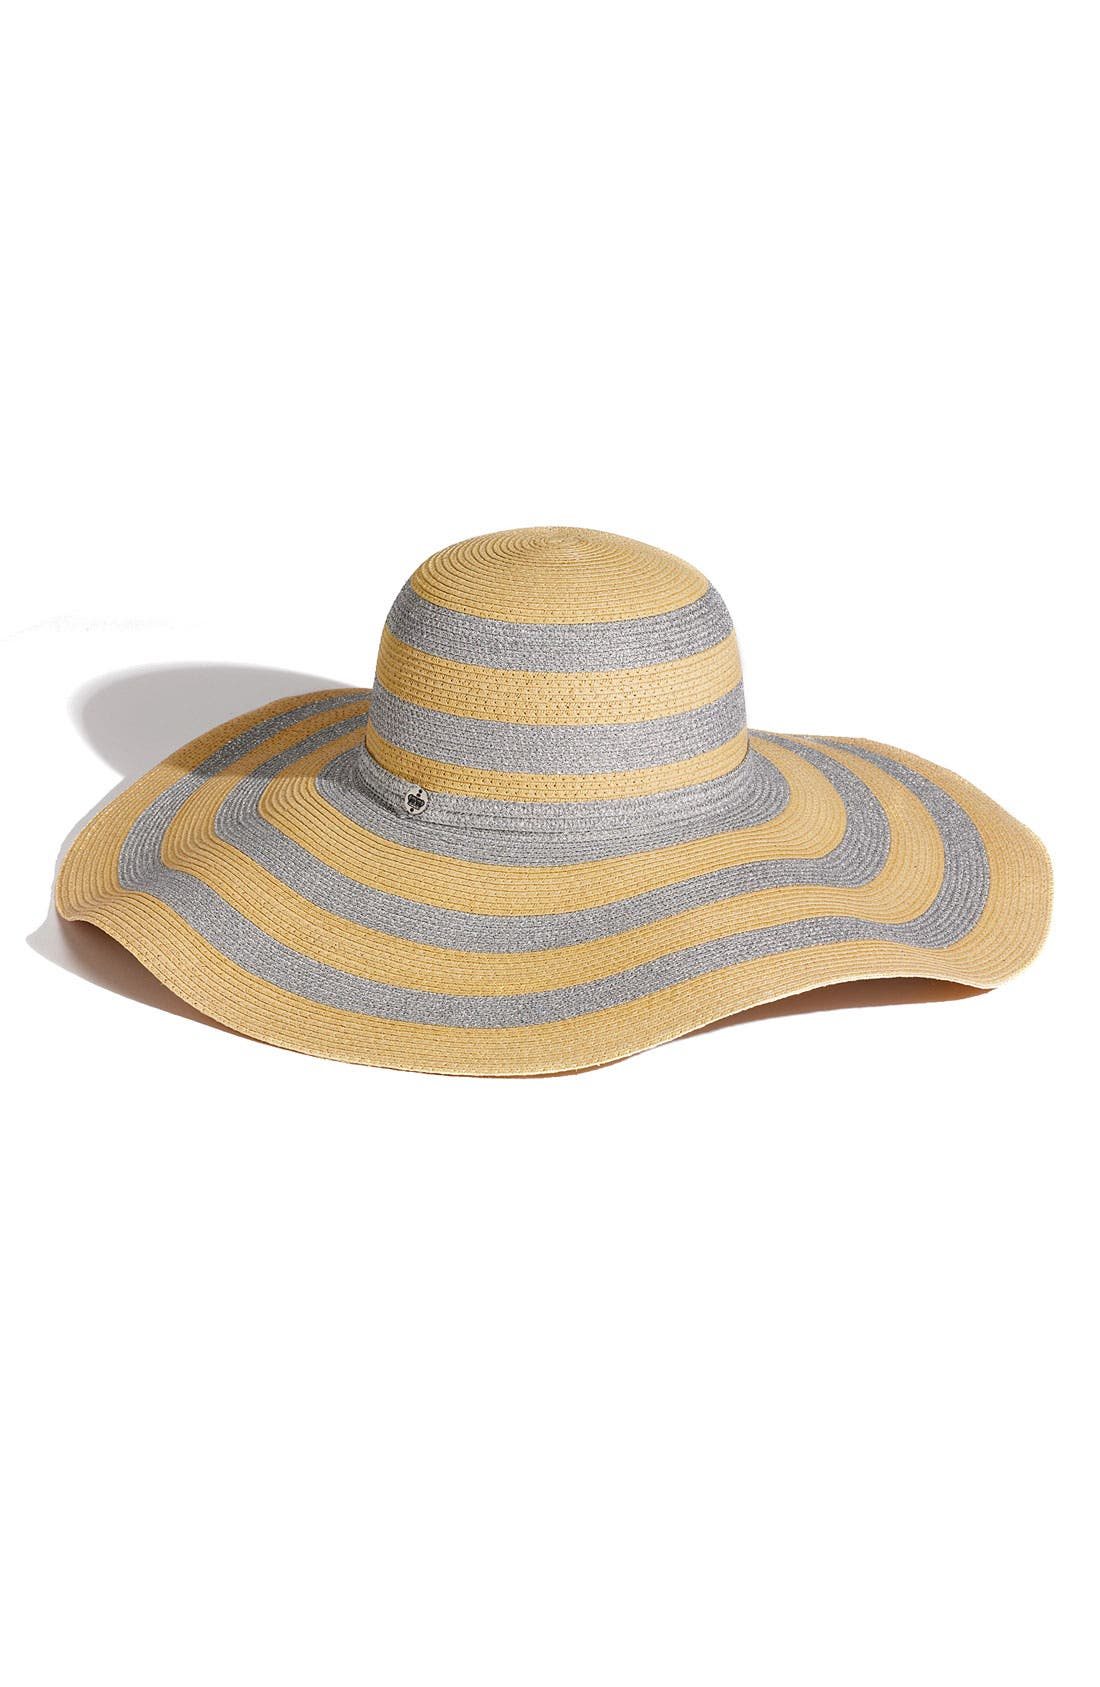 Alternate Image 1 Selected - Juicy Couture Stripe Floppy Paper Straw Hat